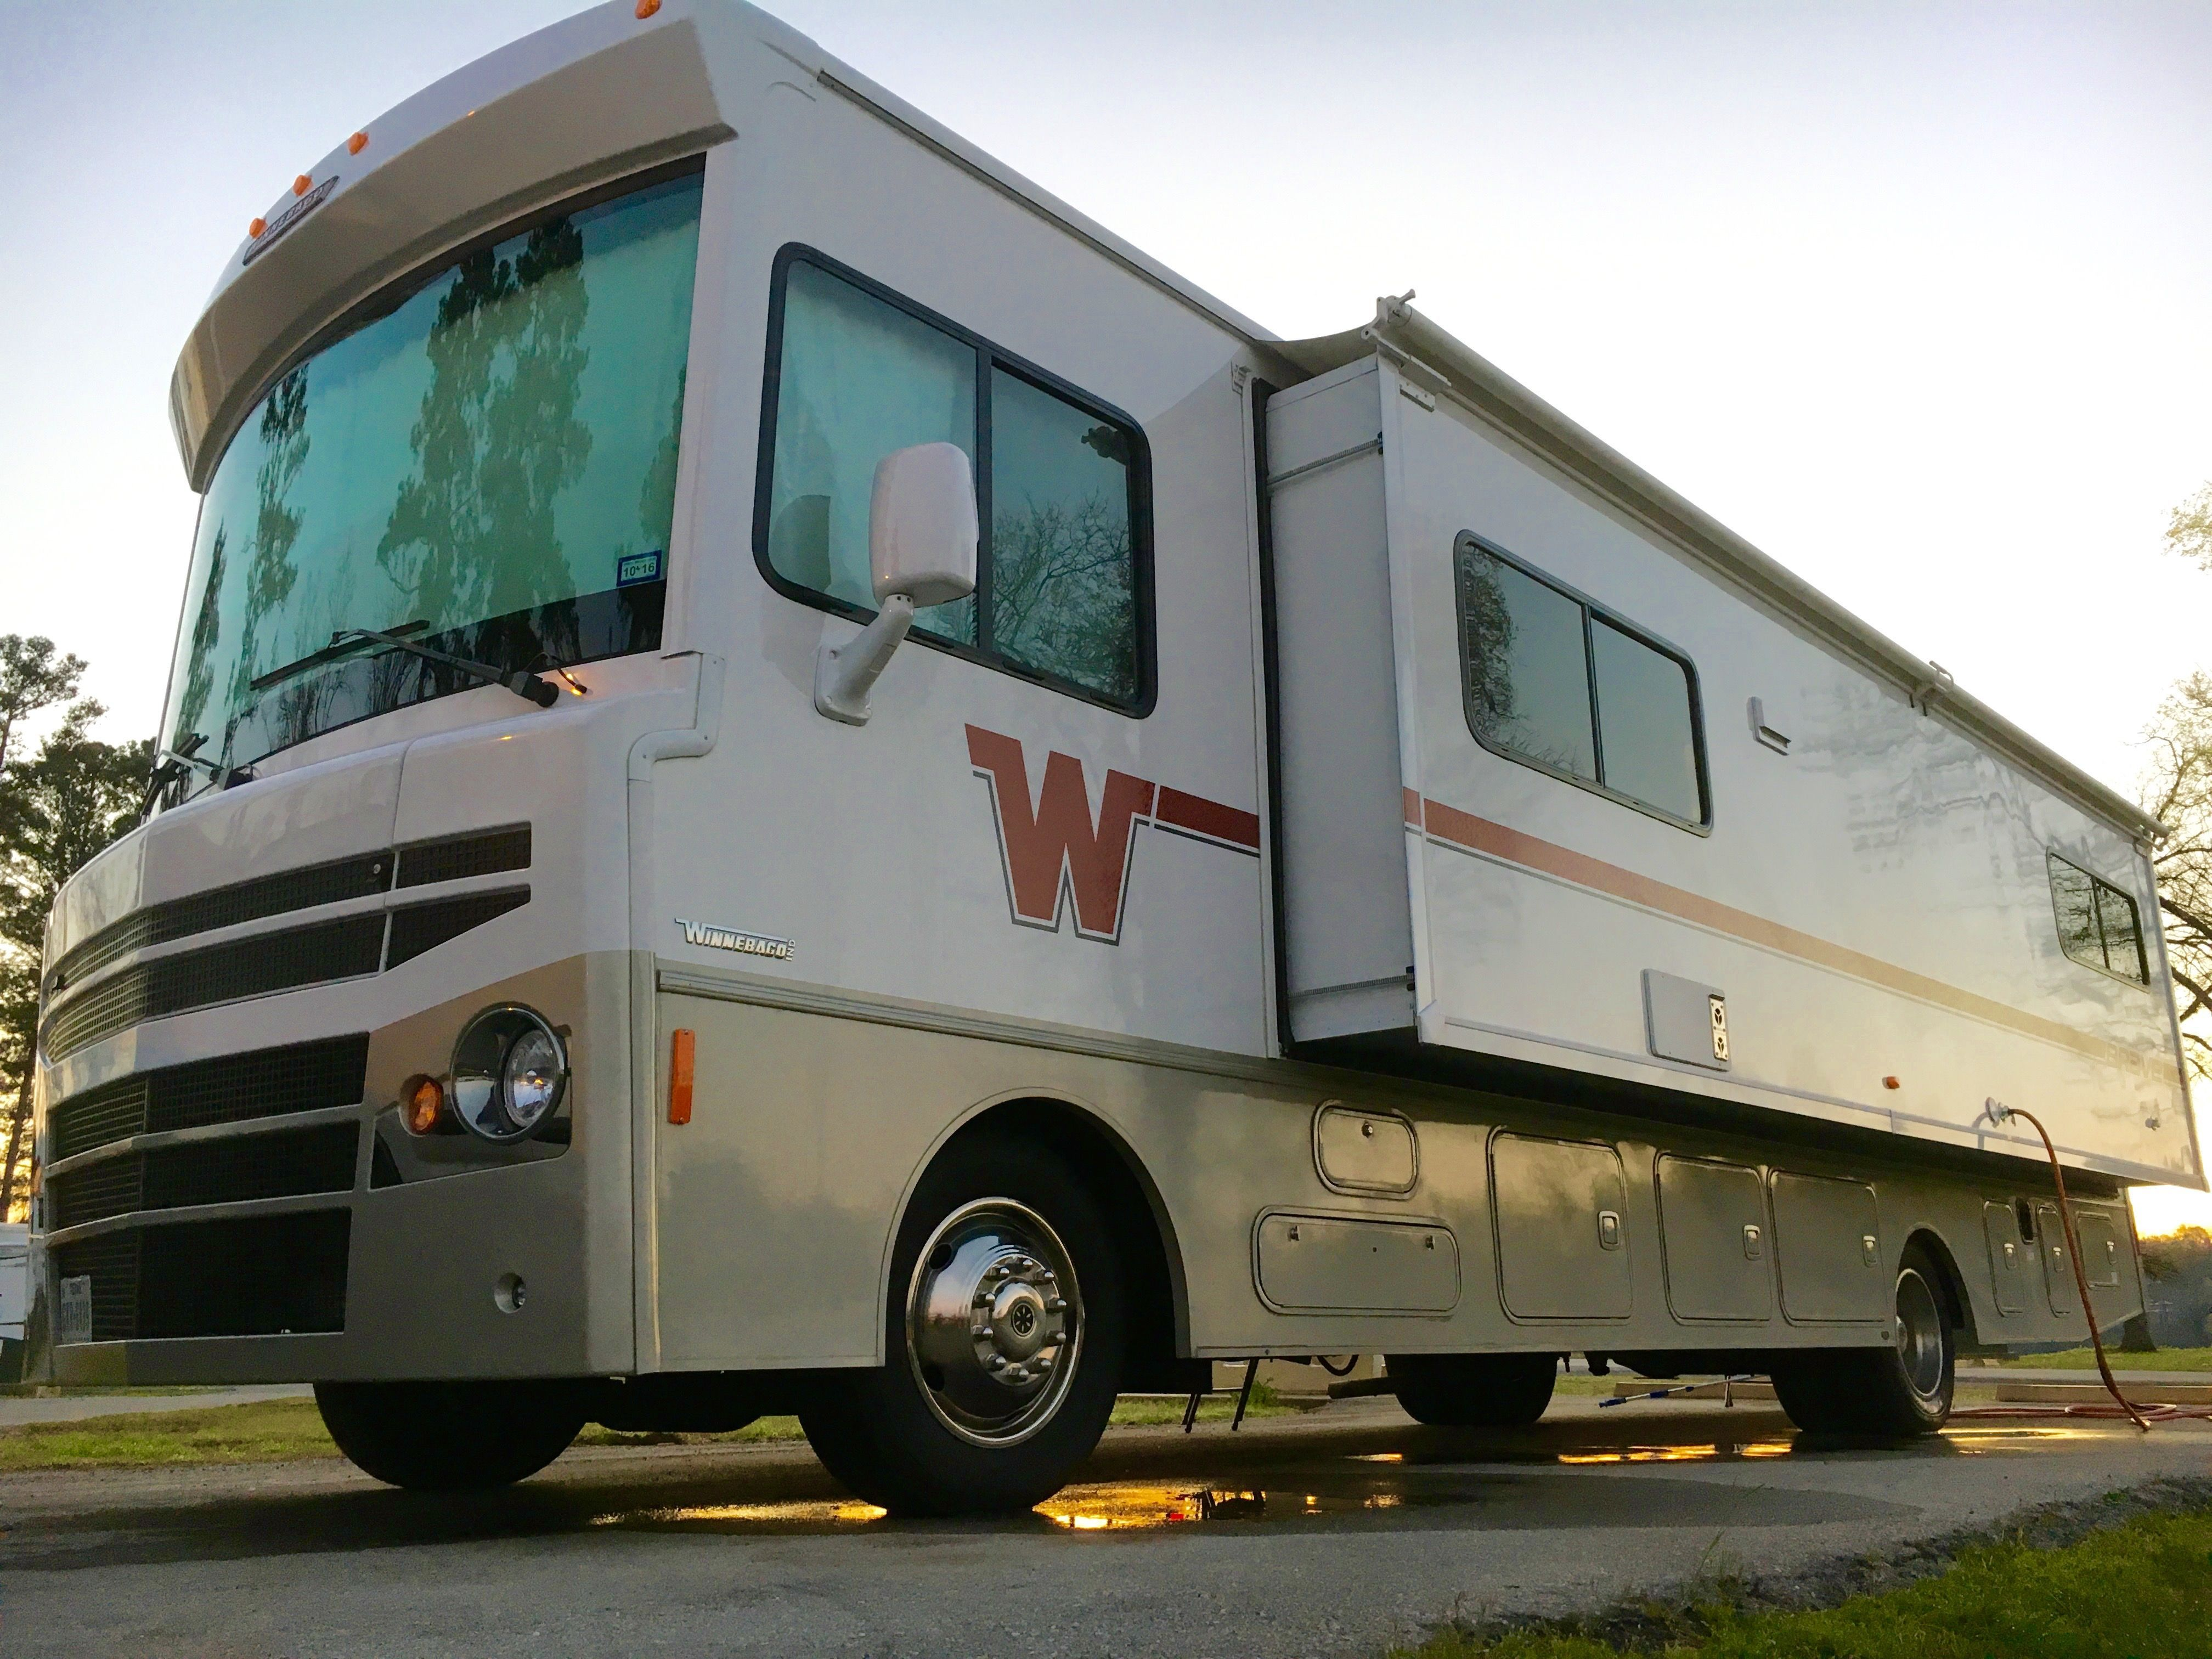 Before we started RVing I didn t know RV memberships were a thing